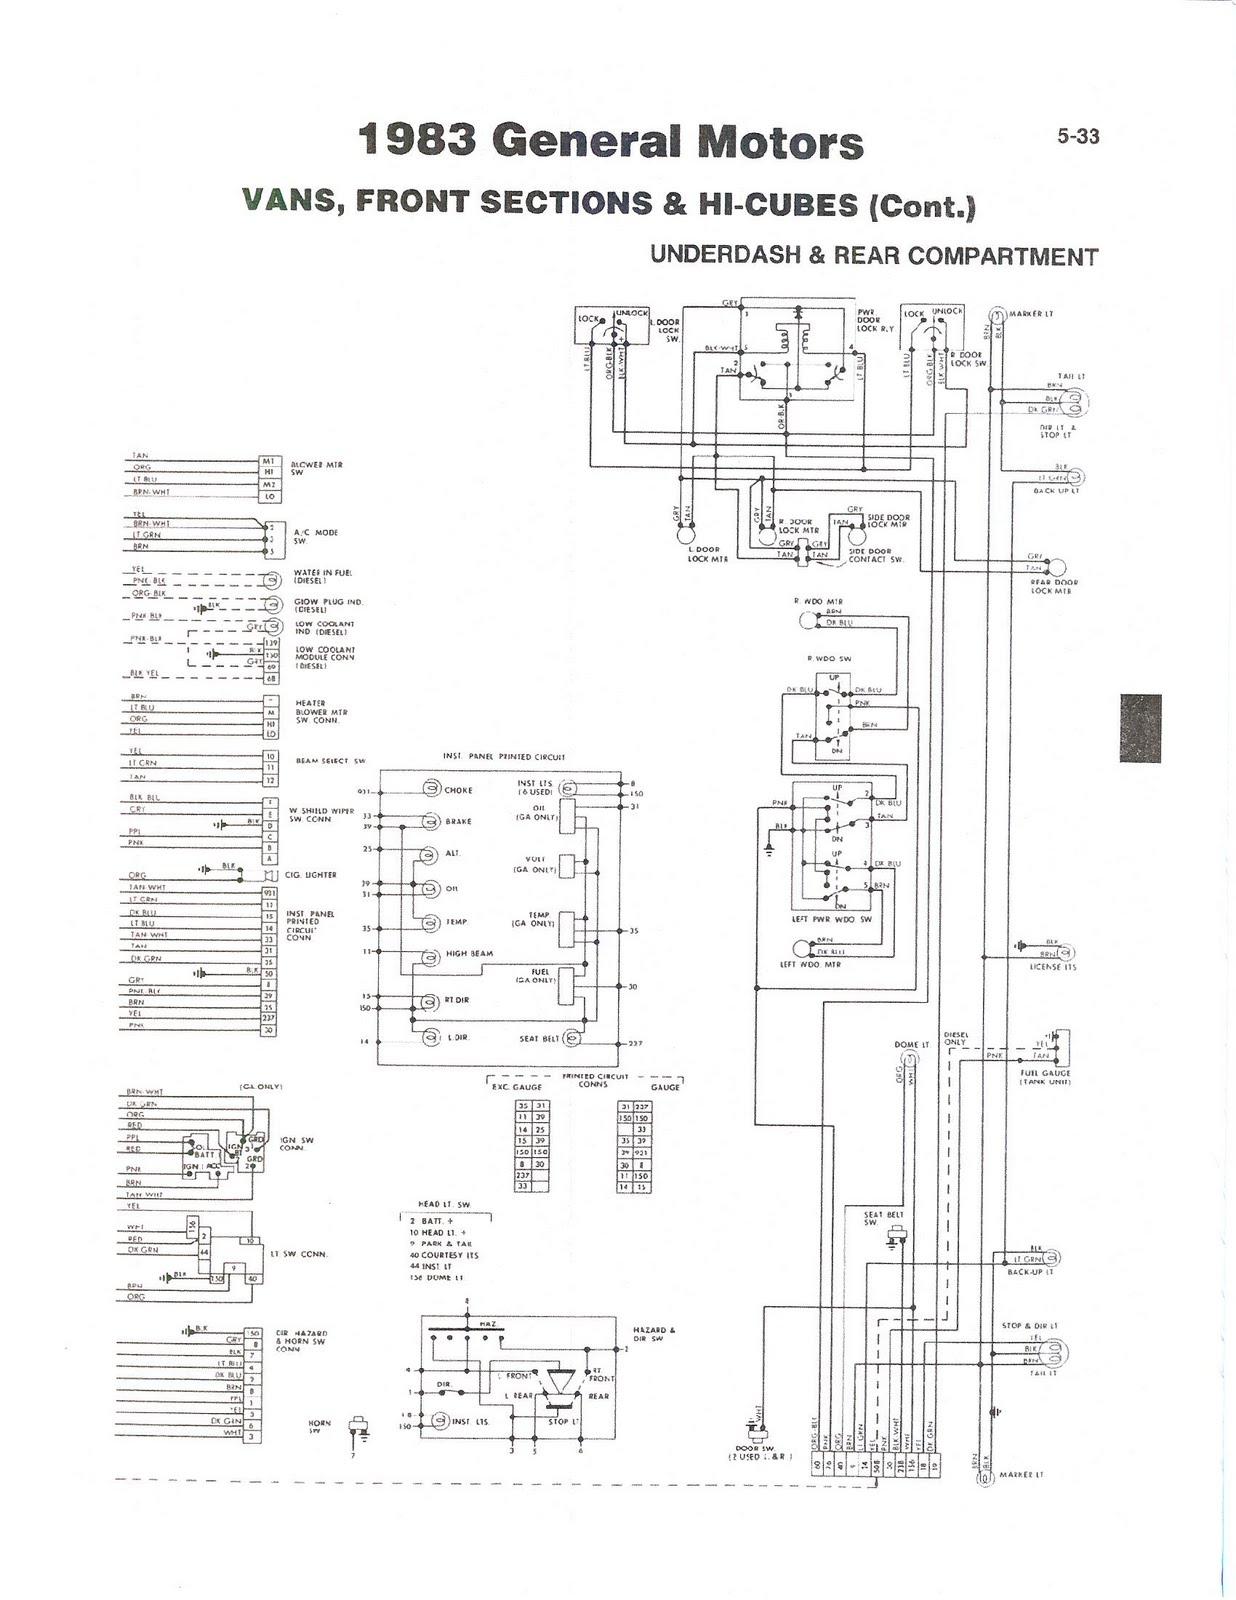 1990 Chevy Fuel Pump Relay Wiring Diagram Will Be A Thing Gm 1983 Fleetwood Pace Arrow Owners Manuals Wireing 2008 Camry Switch